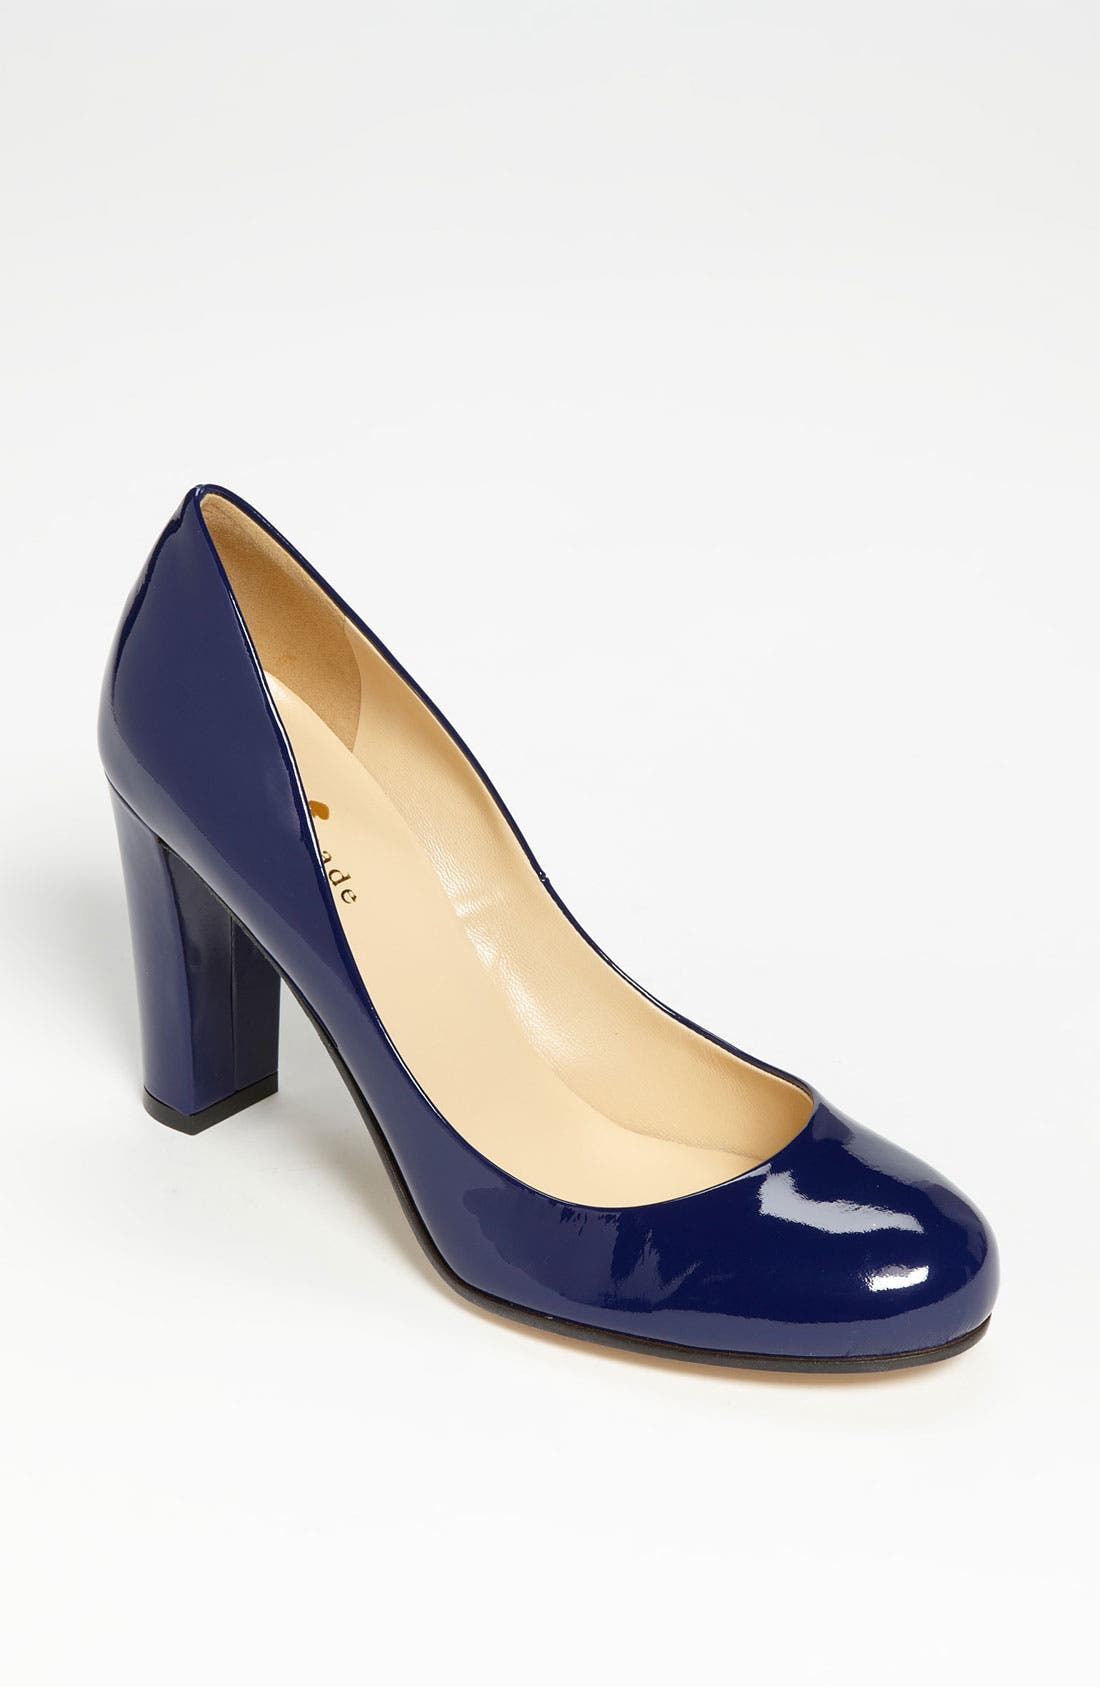 Alternate Image 1 Selected - kate spade new york 'leslie' pump